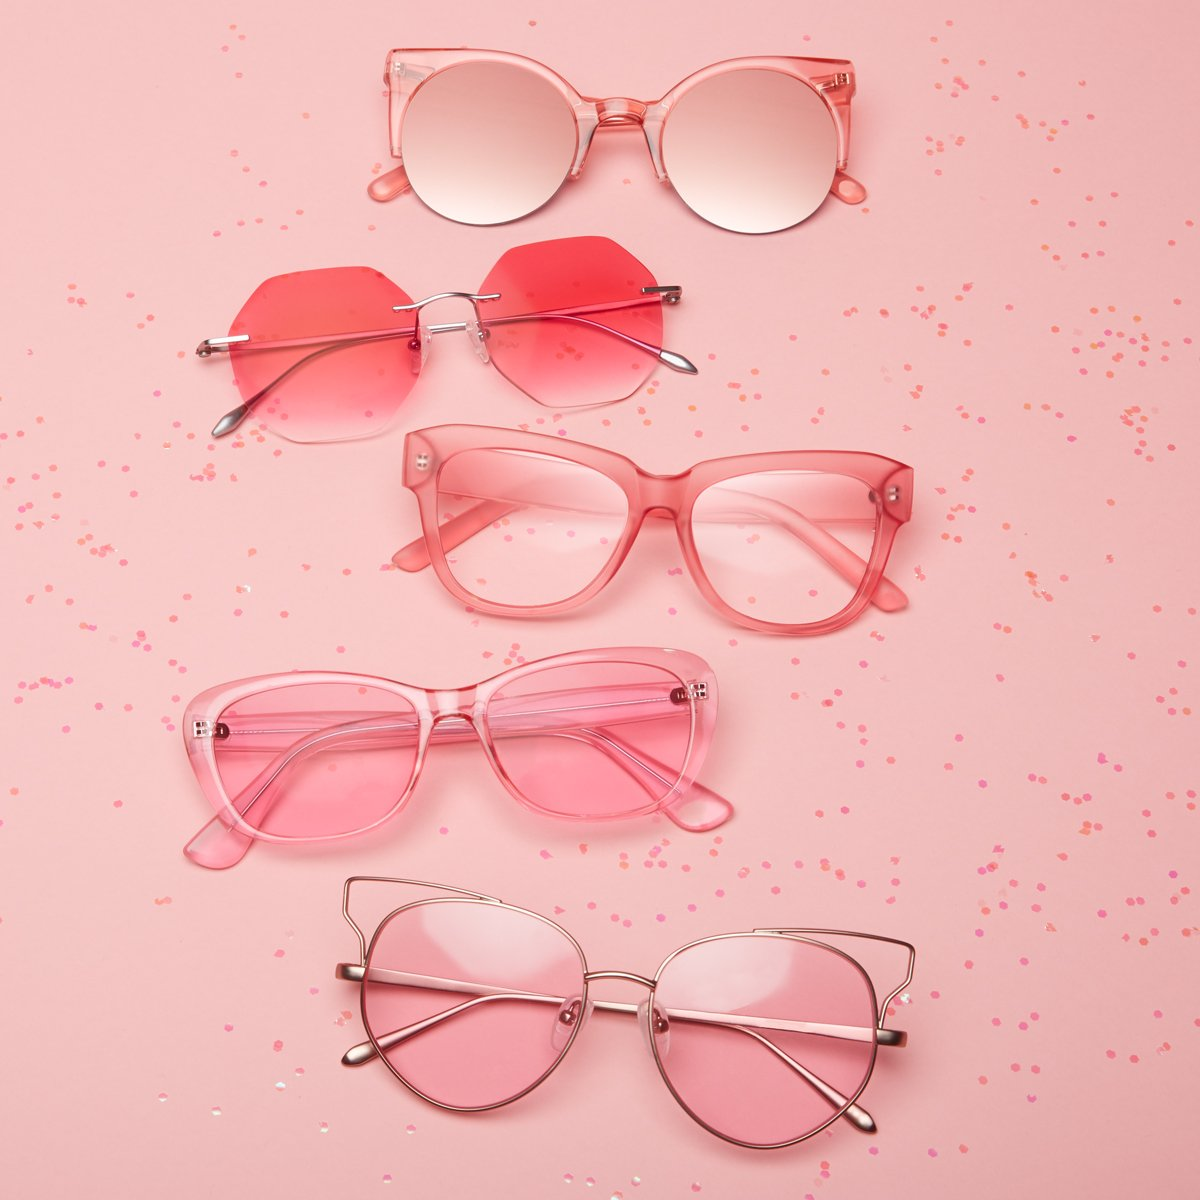 Zenni On Twitter You Can Never Have Too Many Pink Glasses